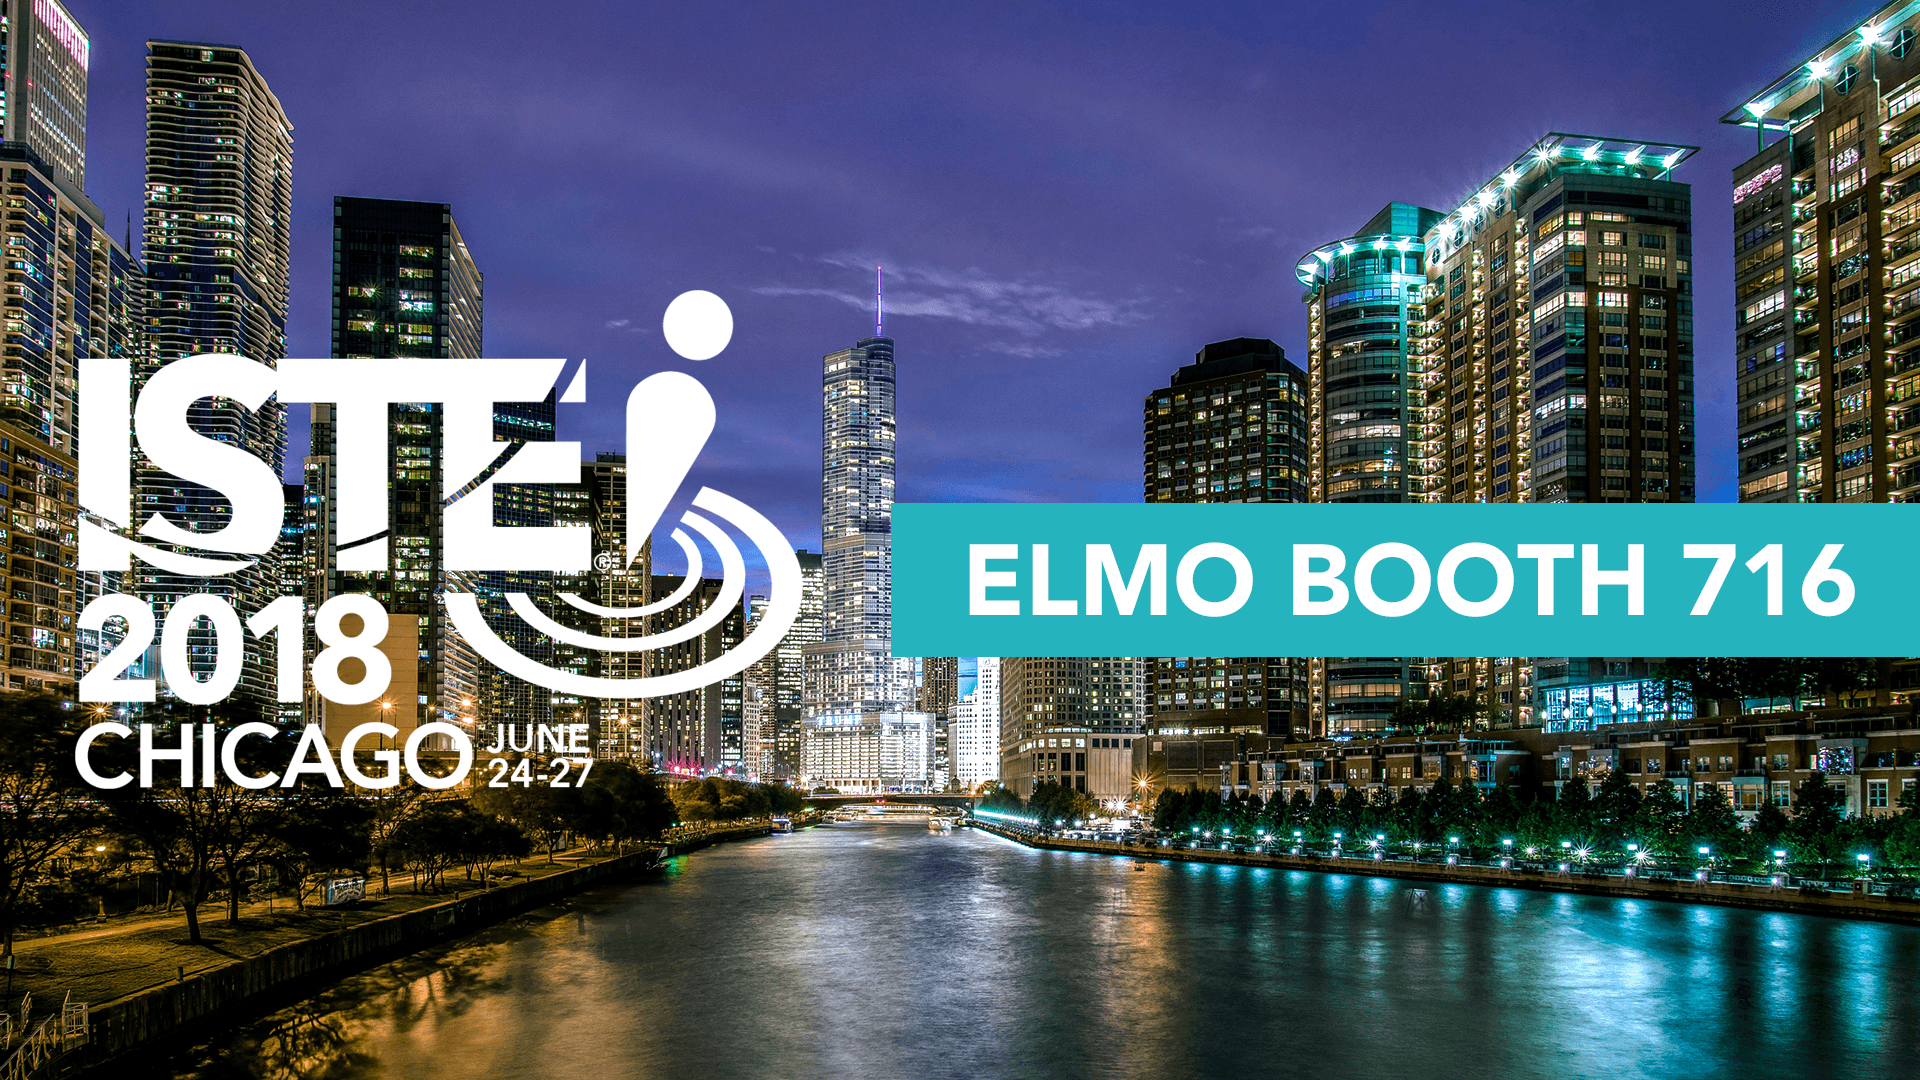 Visit ELMO USA at ISTE 2018 in Booth 716!